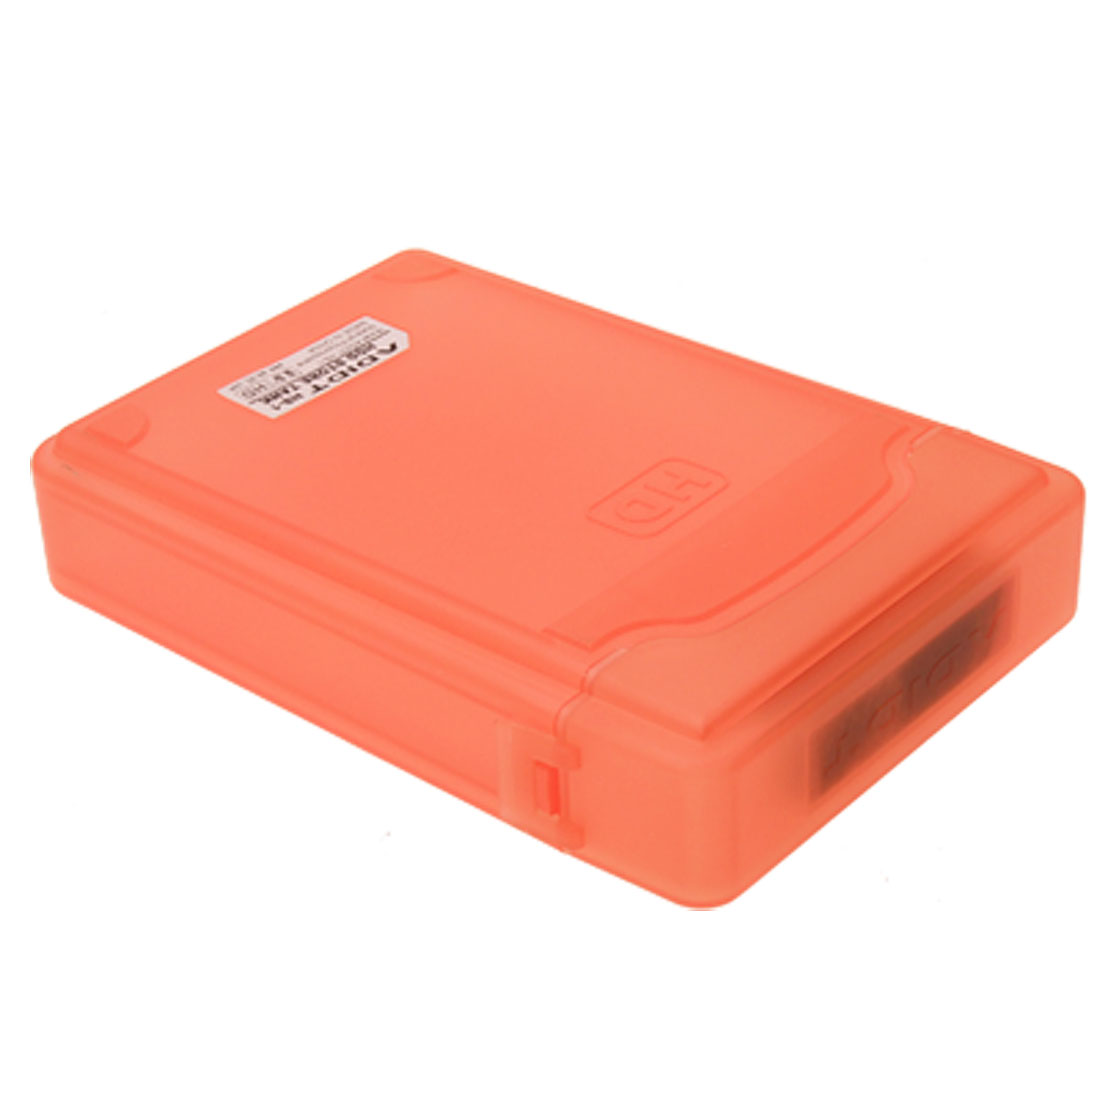 3.5 Inch HDD Hard Disk Drive Enclosure Tank Case Orange